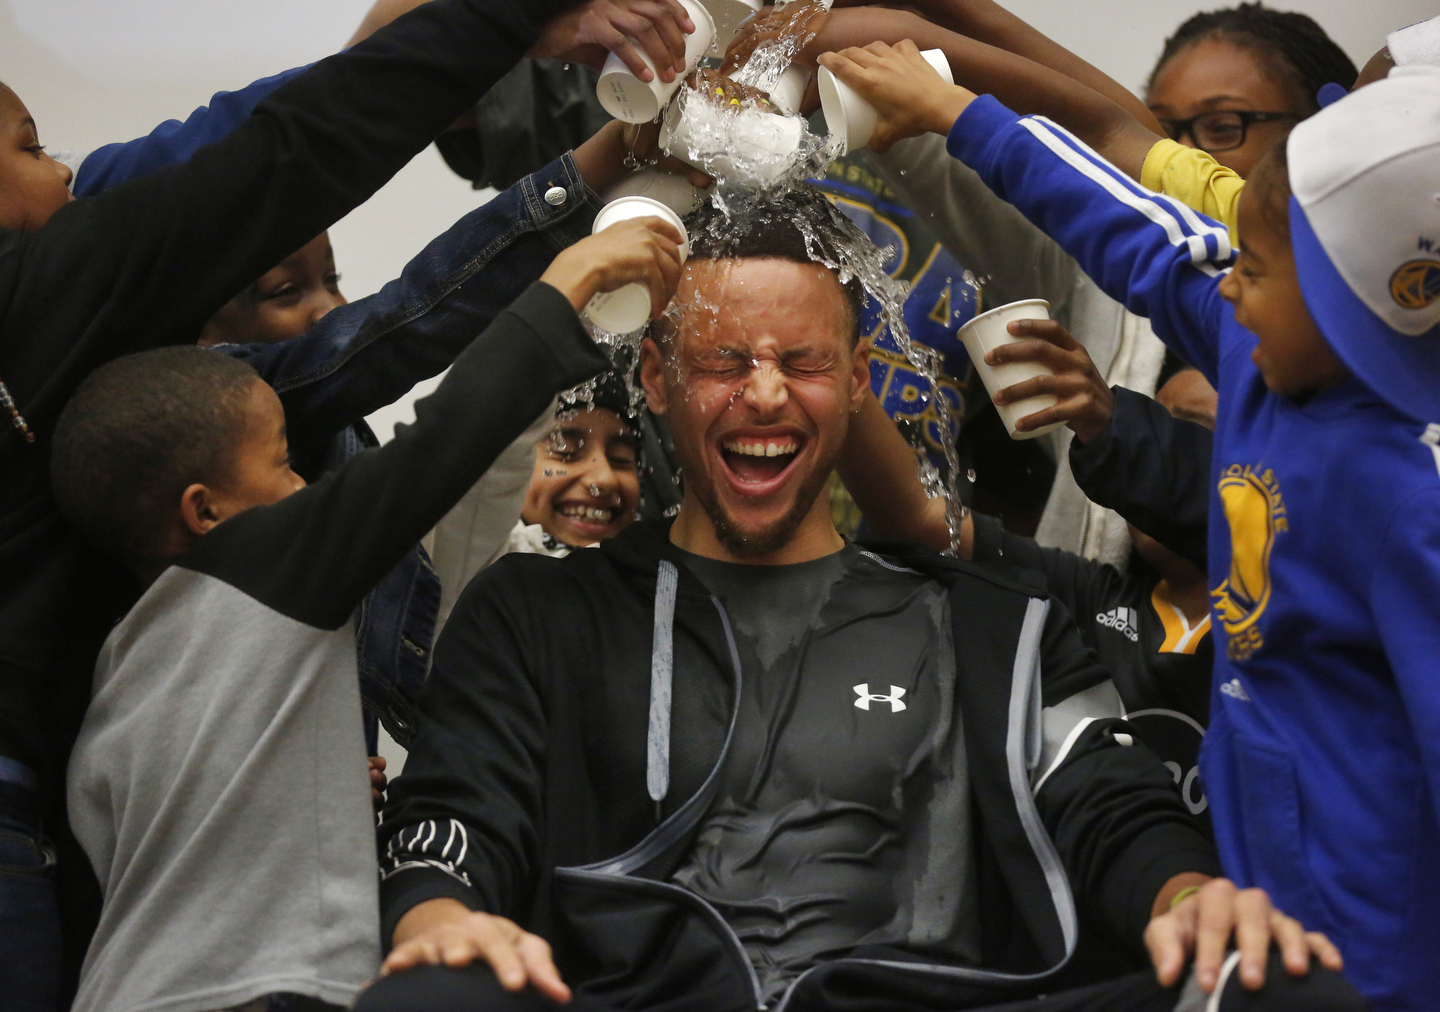 Students pour water onto Stephen Curry's head during an event at Martin Luther King Jr. Elementary School wherein Curry promoted drinking water and healthy eating in partnership with his sponsor Brita March 8, 2016 in Oakland, Calif.